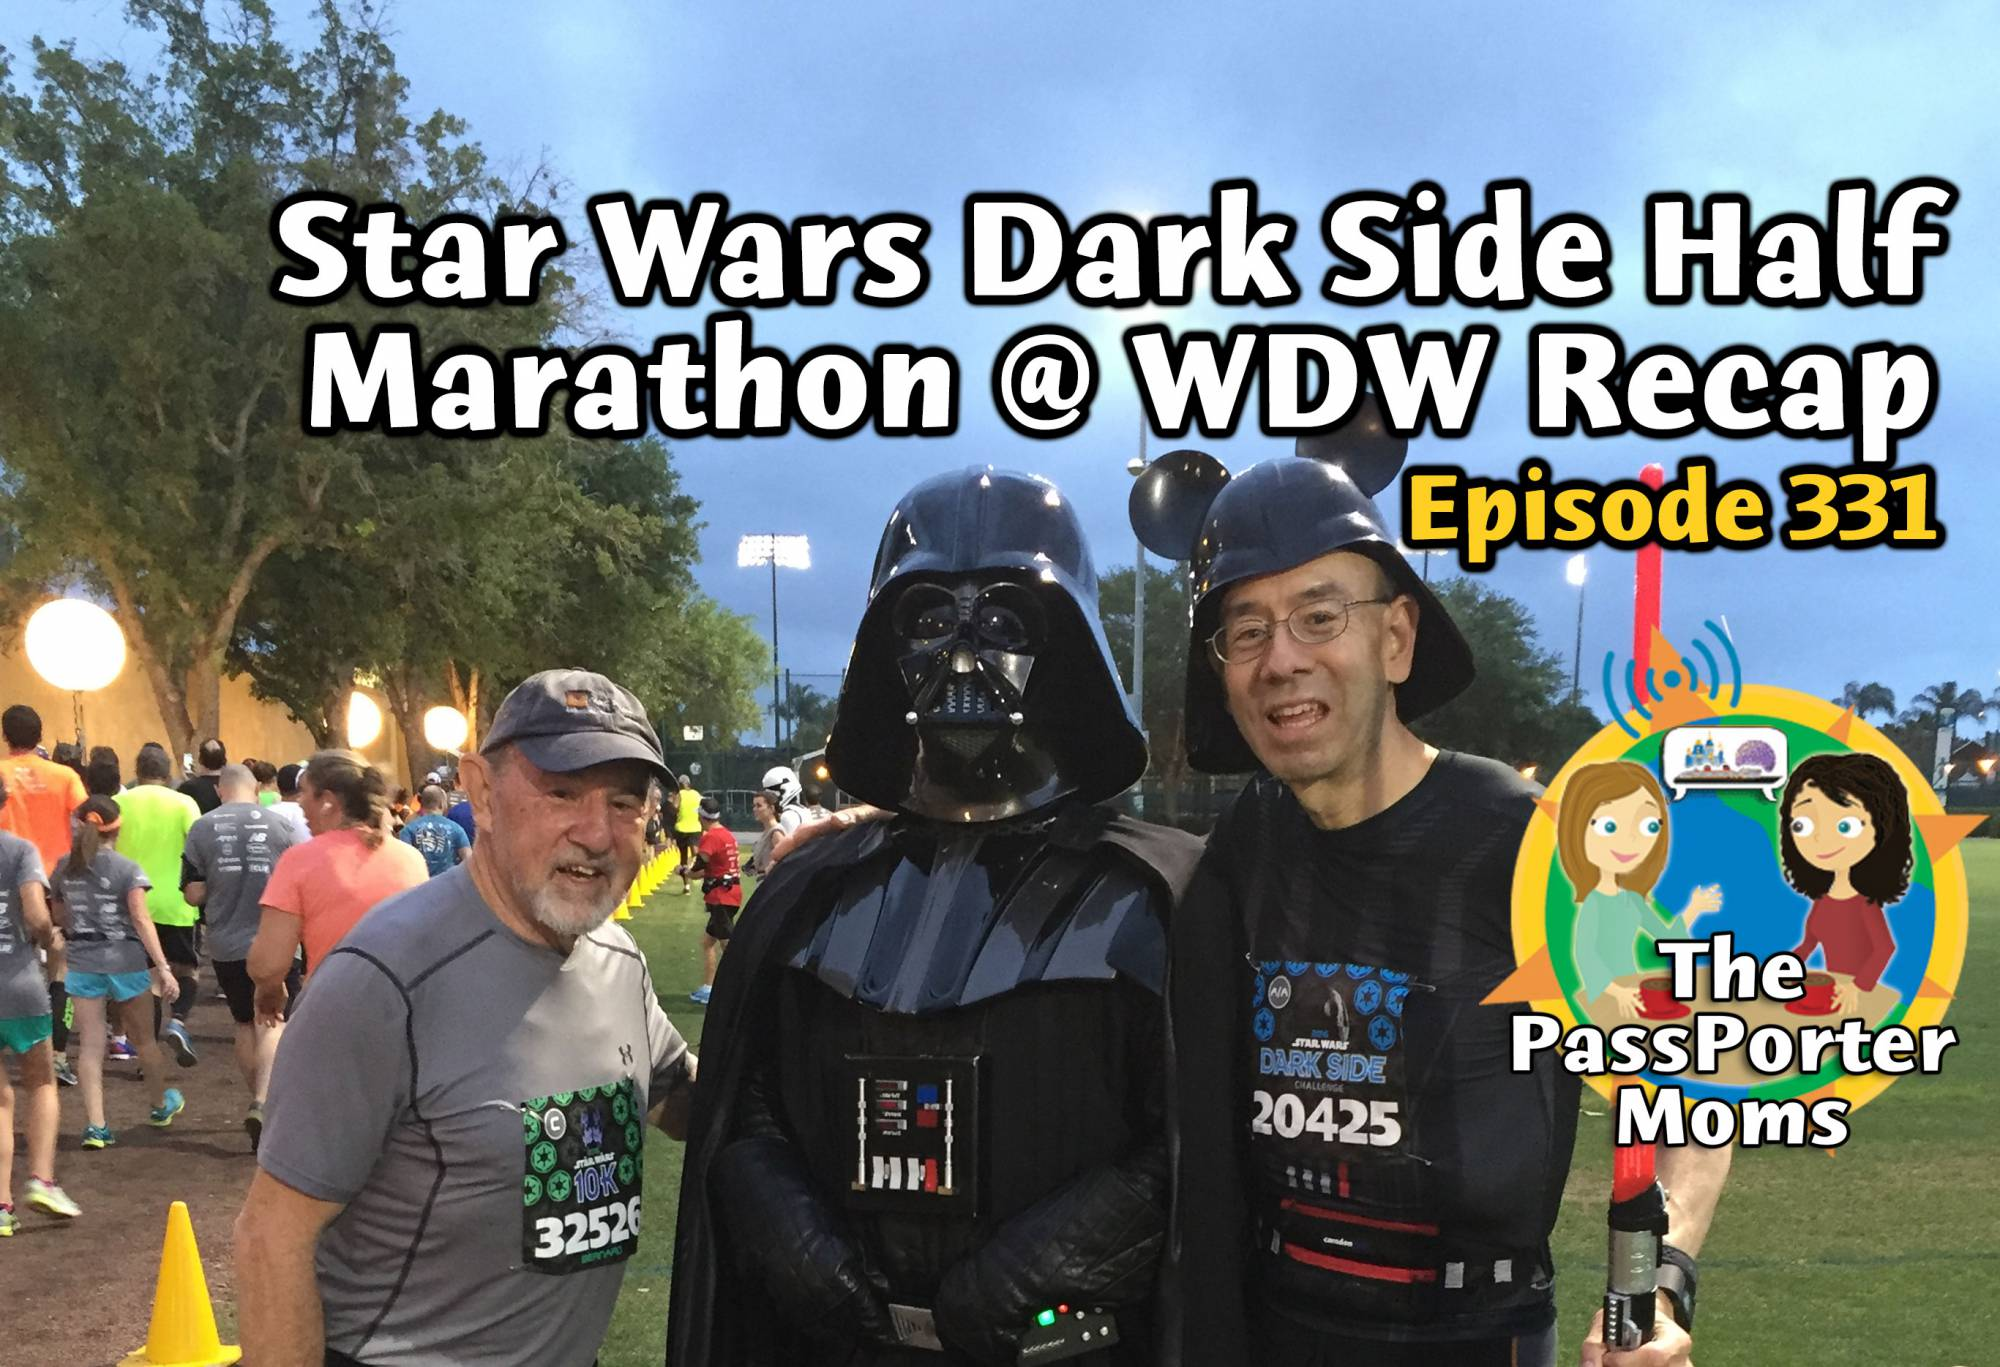 Star Wars Dark Side Half Marathon Recap